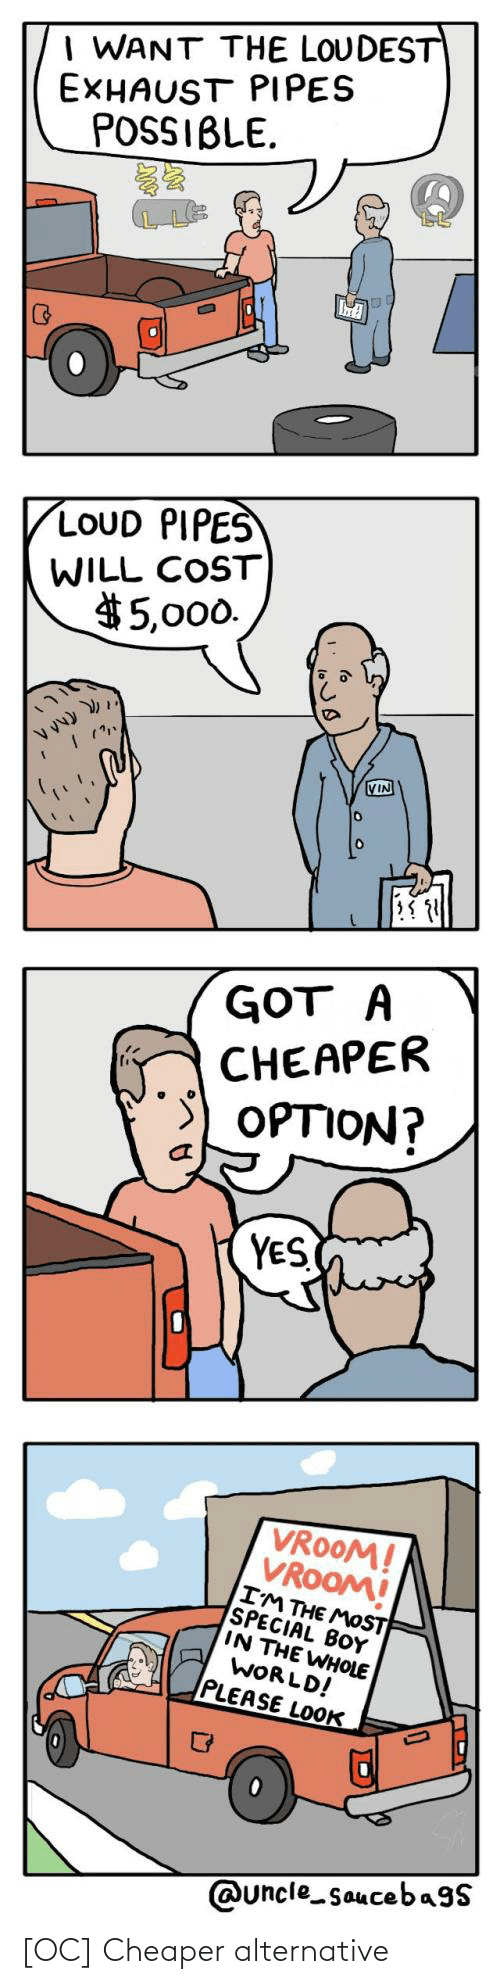 alternative: [OC] Cheaper alternative